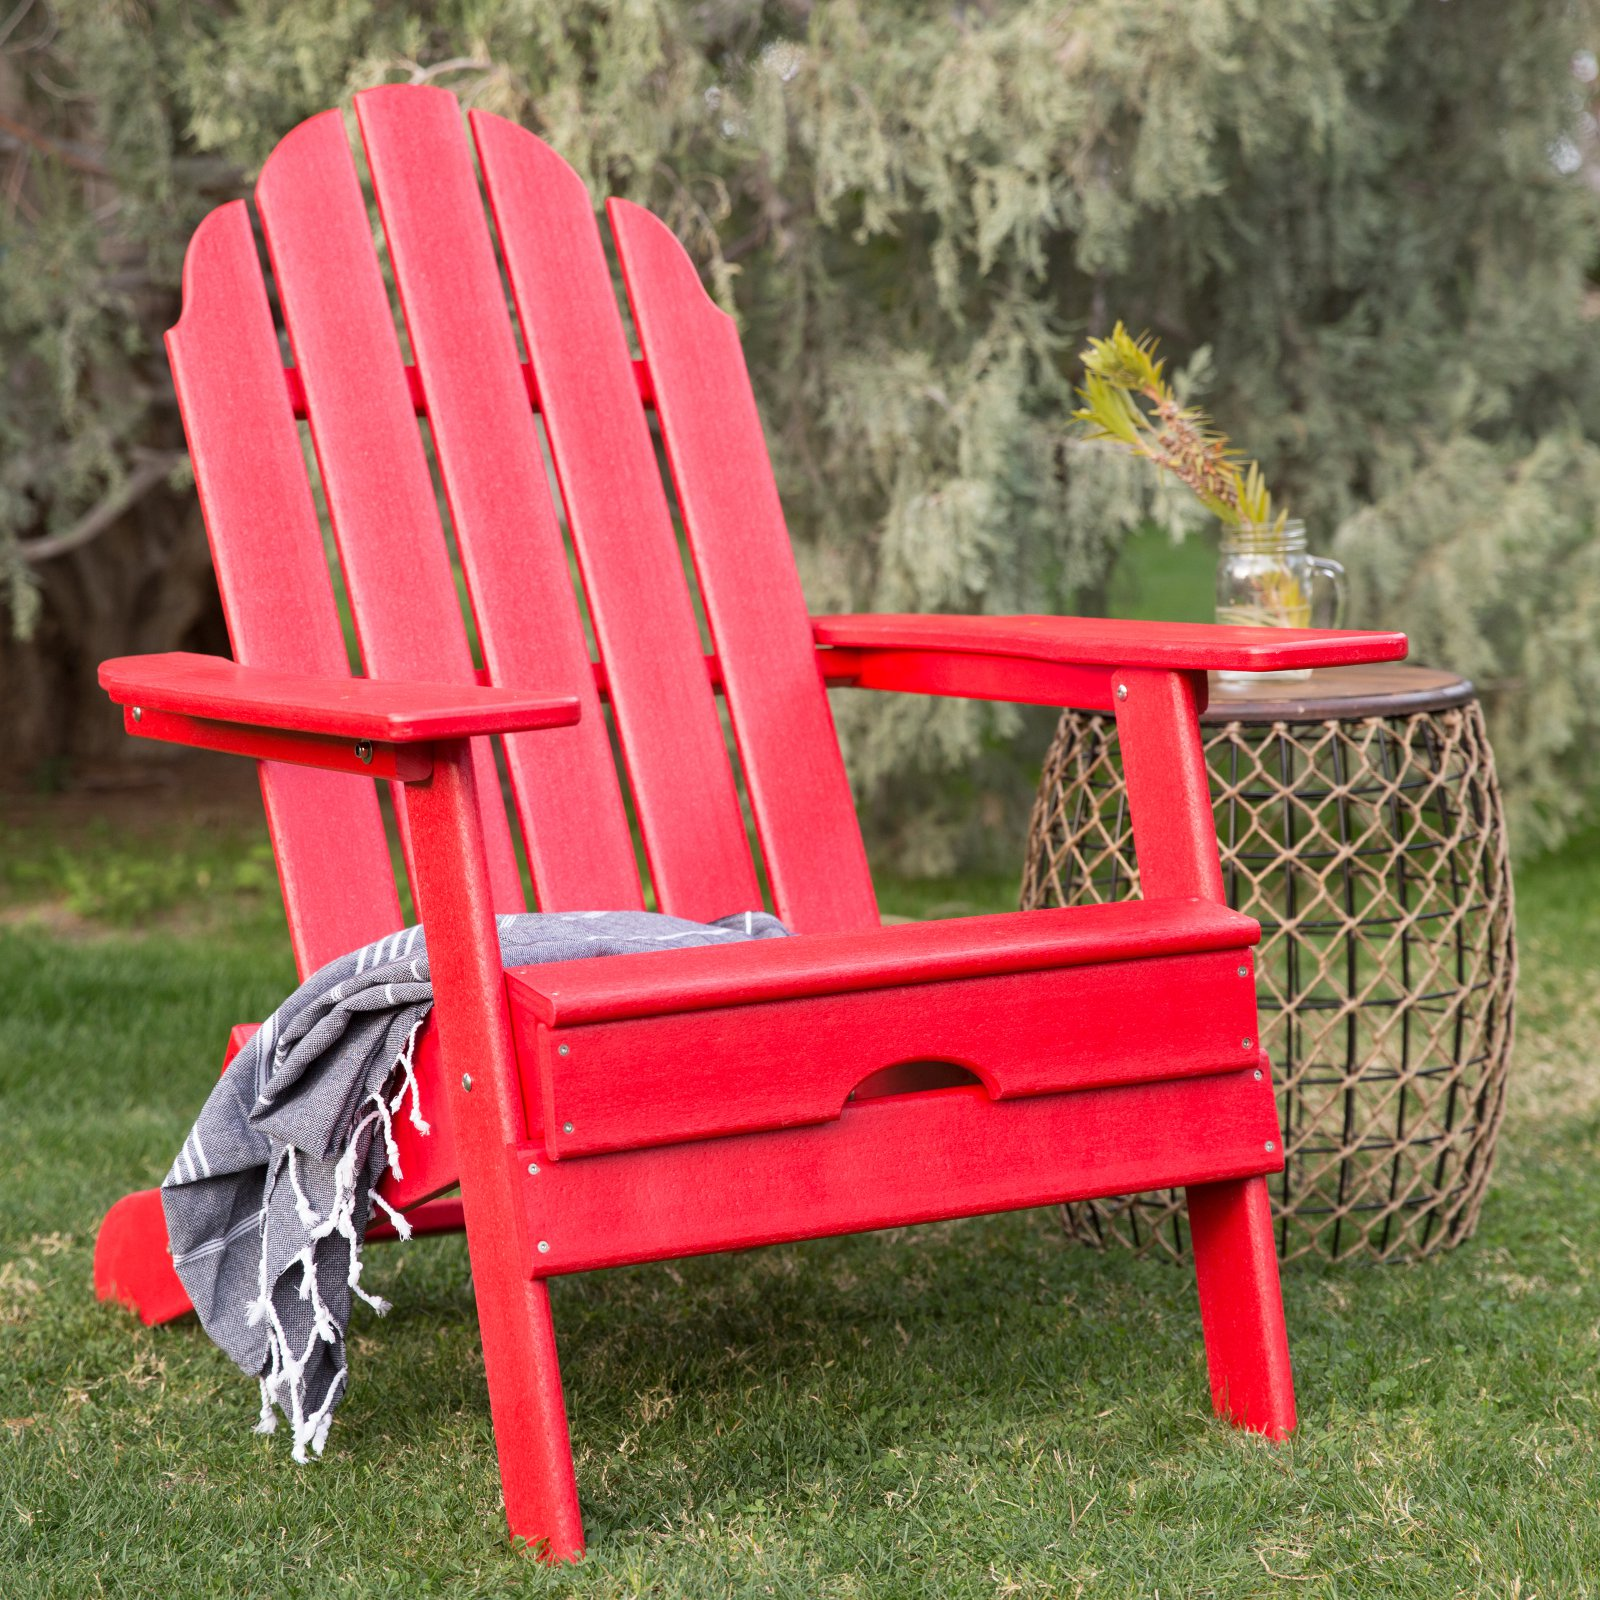 Belham Living Belmore Recycled Plastic Folding Adirondack Chair